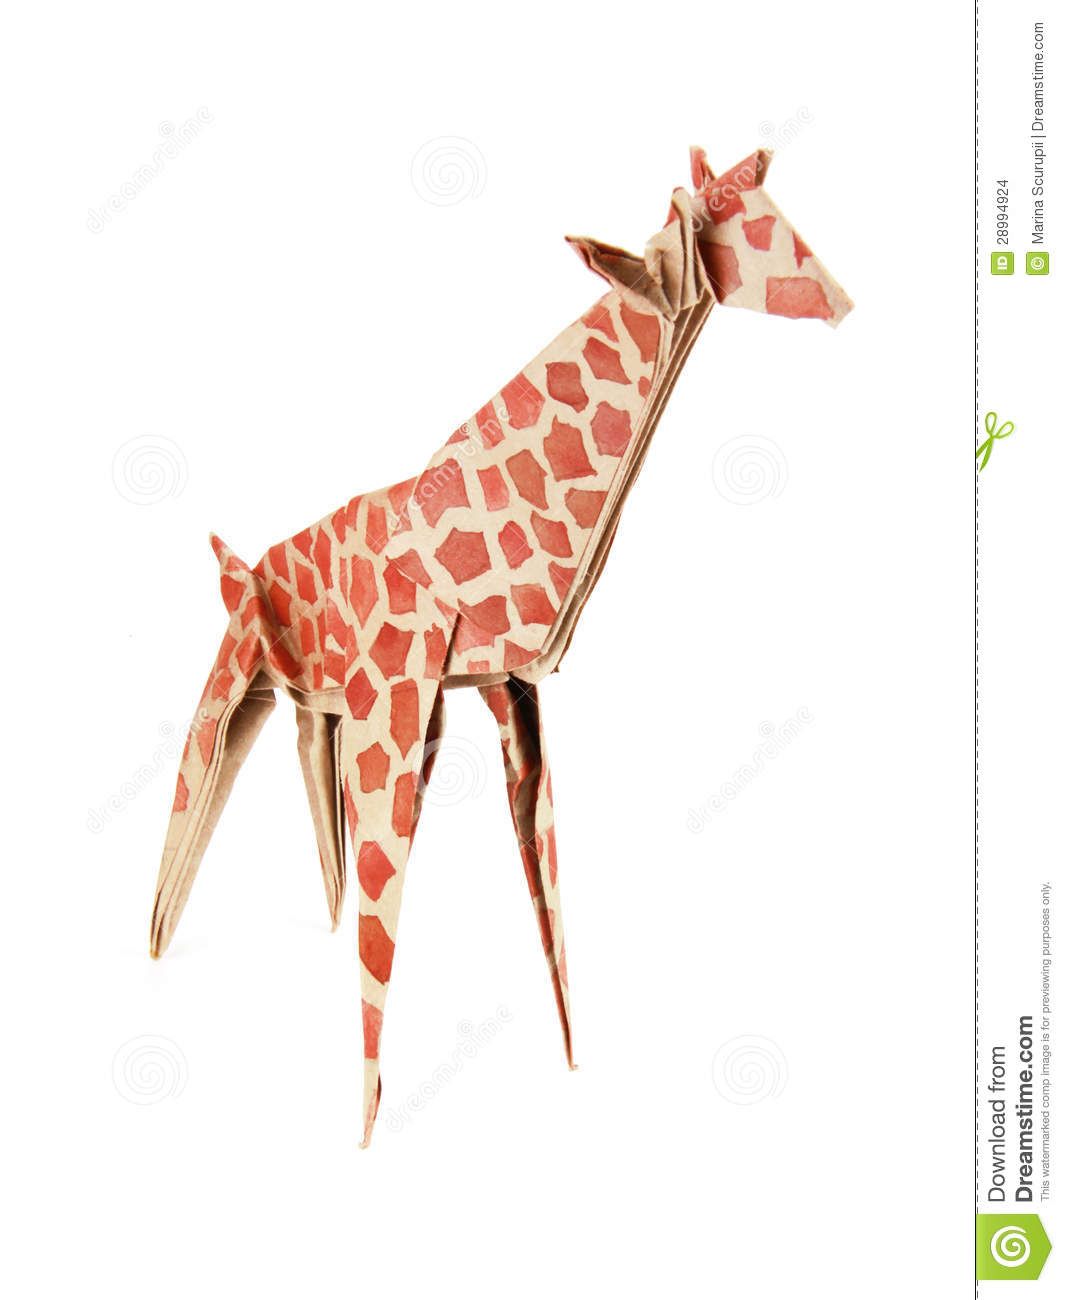 Origami giraffe stock photo. Image of objects, tall ... - photo#5